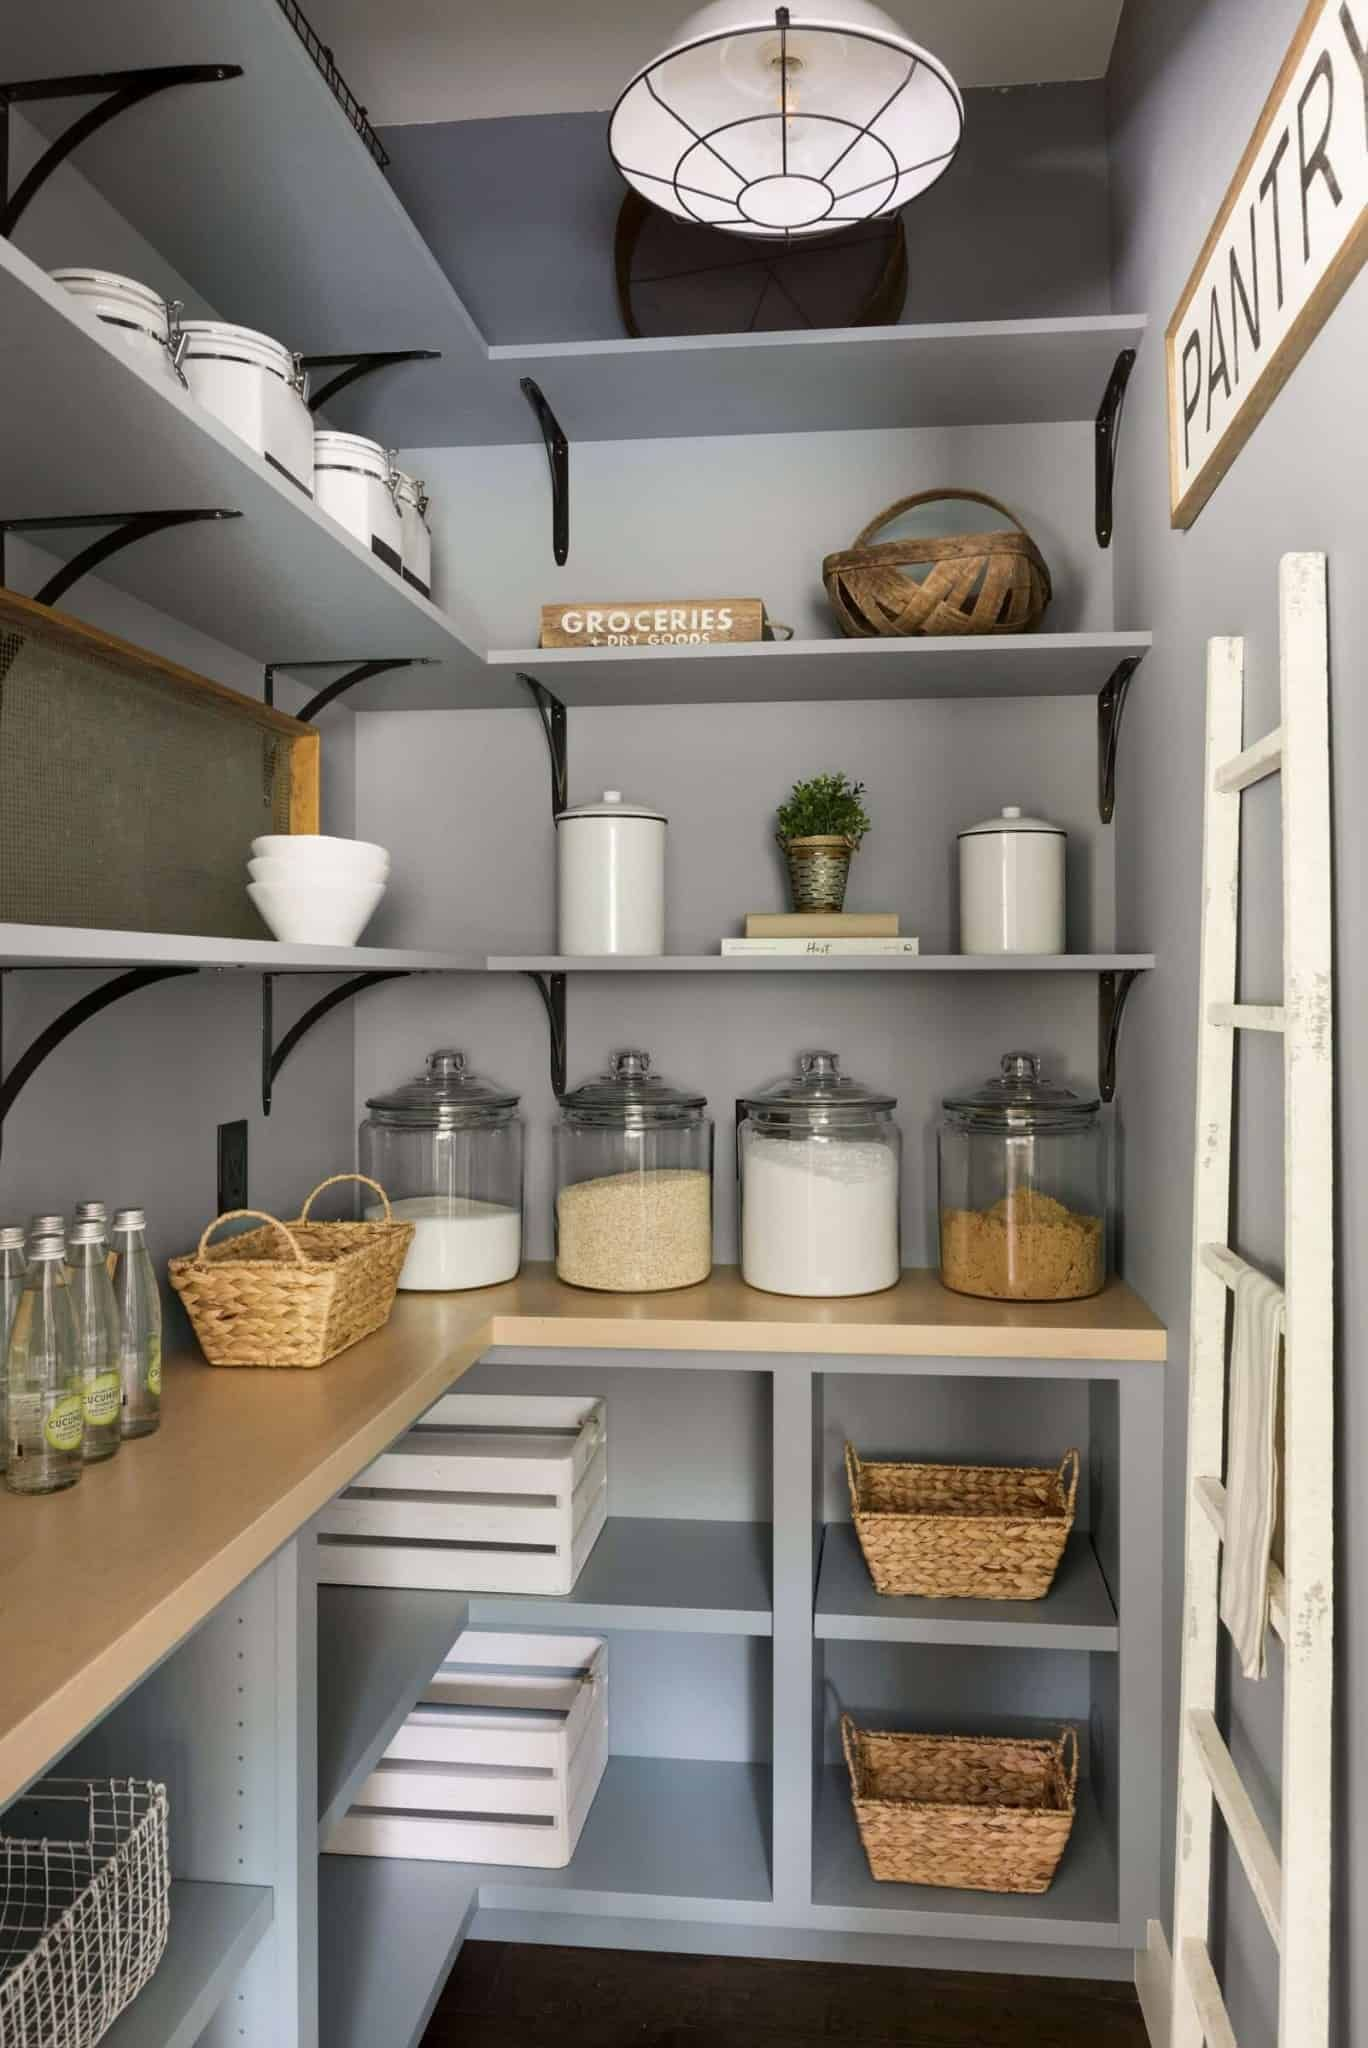 26 Pantry Shelving And Organization Ideas Pantry Renovation Pantry Remodel Kitchen Remodel Kitchen store room design